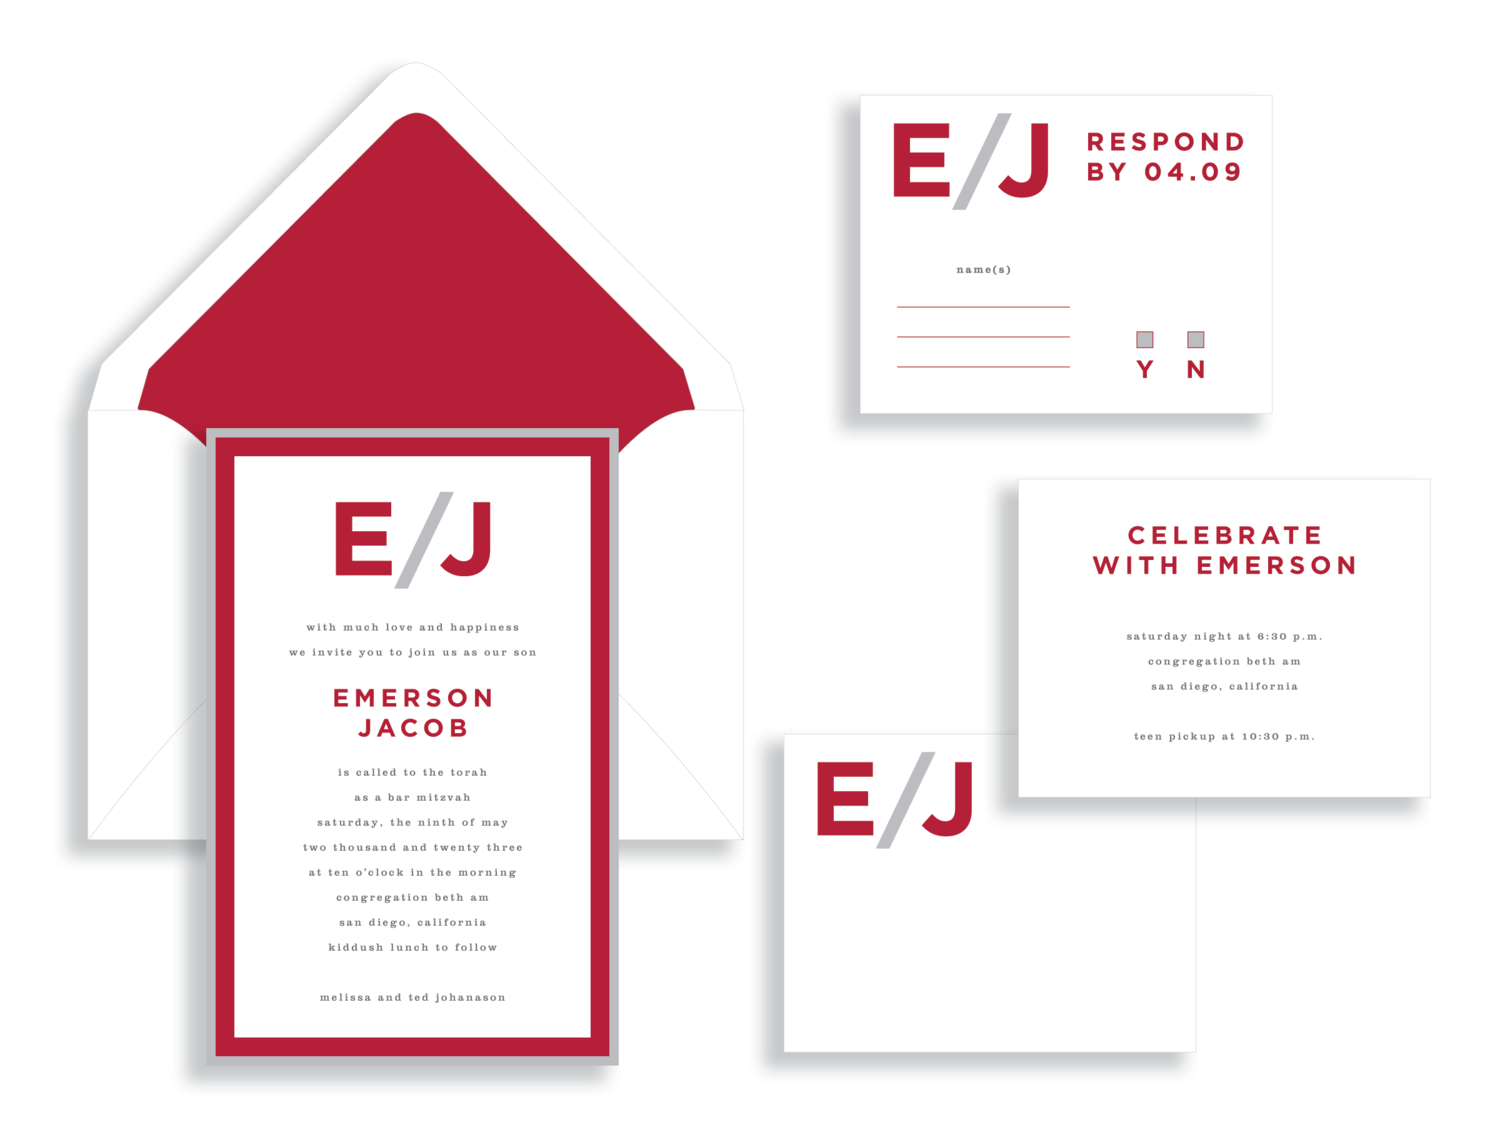 Emerson Bar Mitzvah invitation in red and silver available in Fairfax Virginia from Staccato.